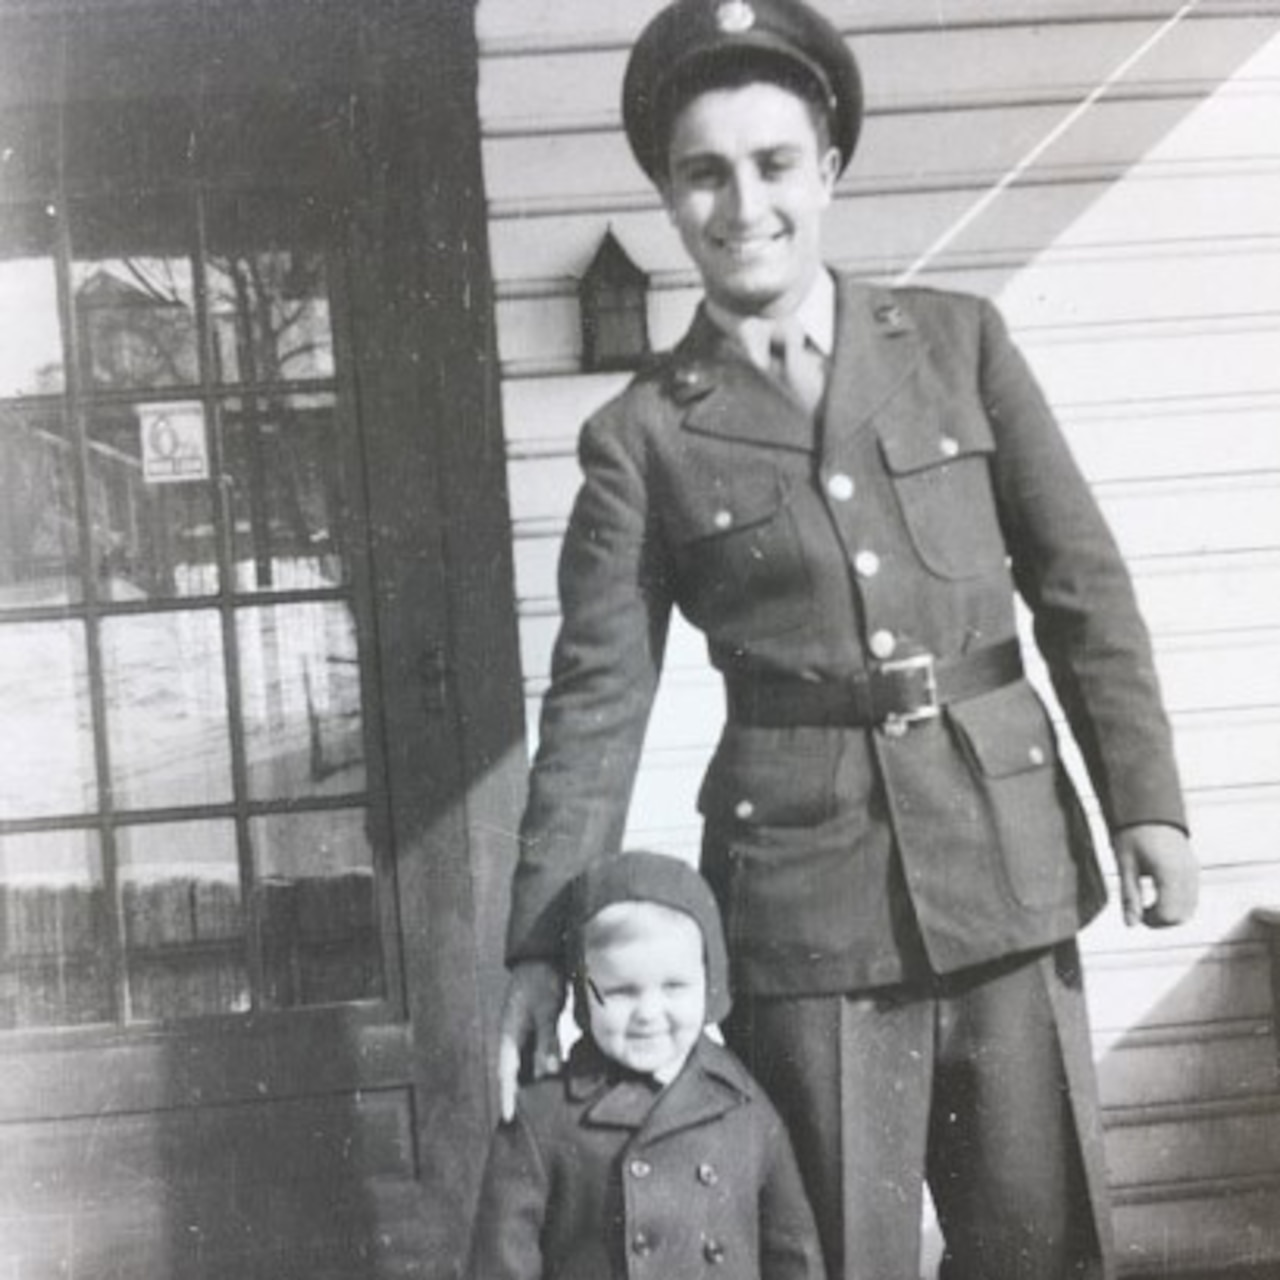 Man in an Army uniform smiles as he stands next to a small child, who is wearing a hat and coat